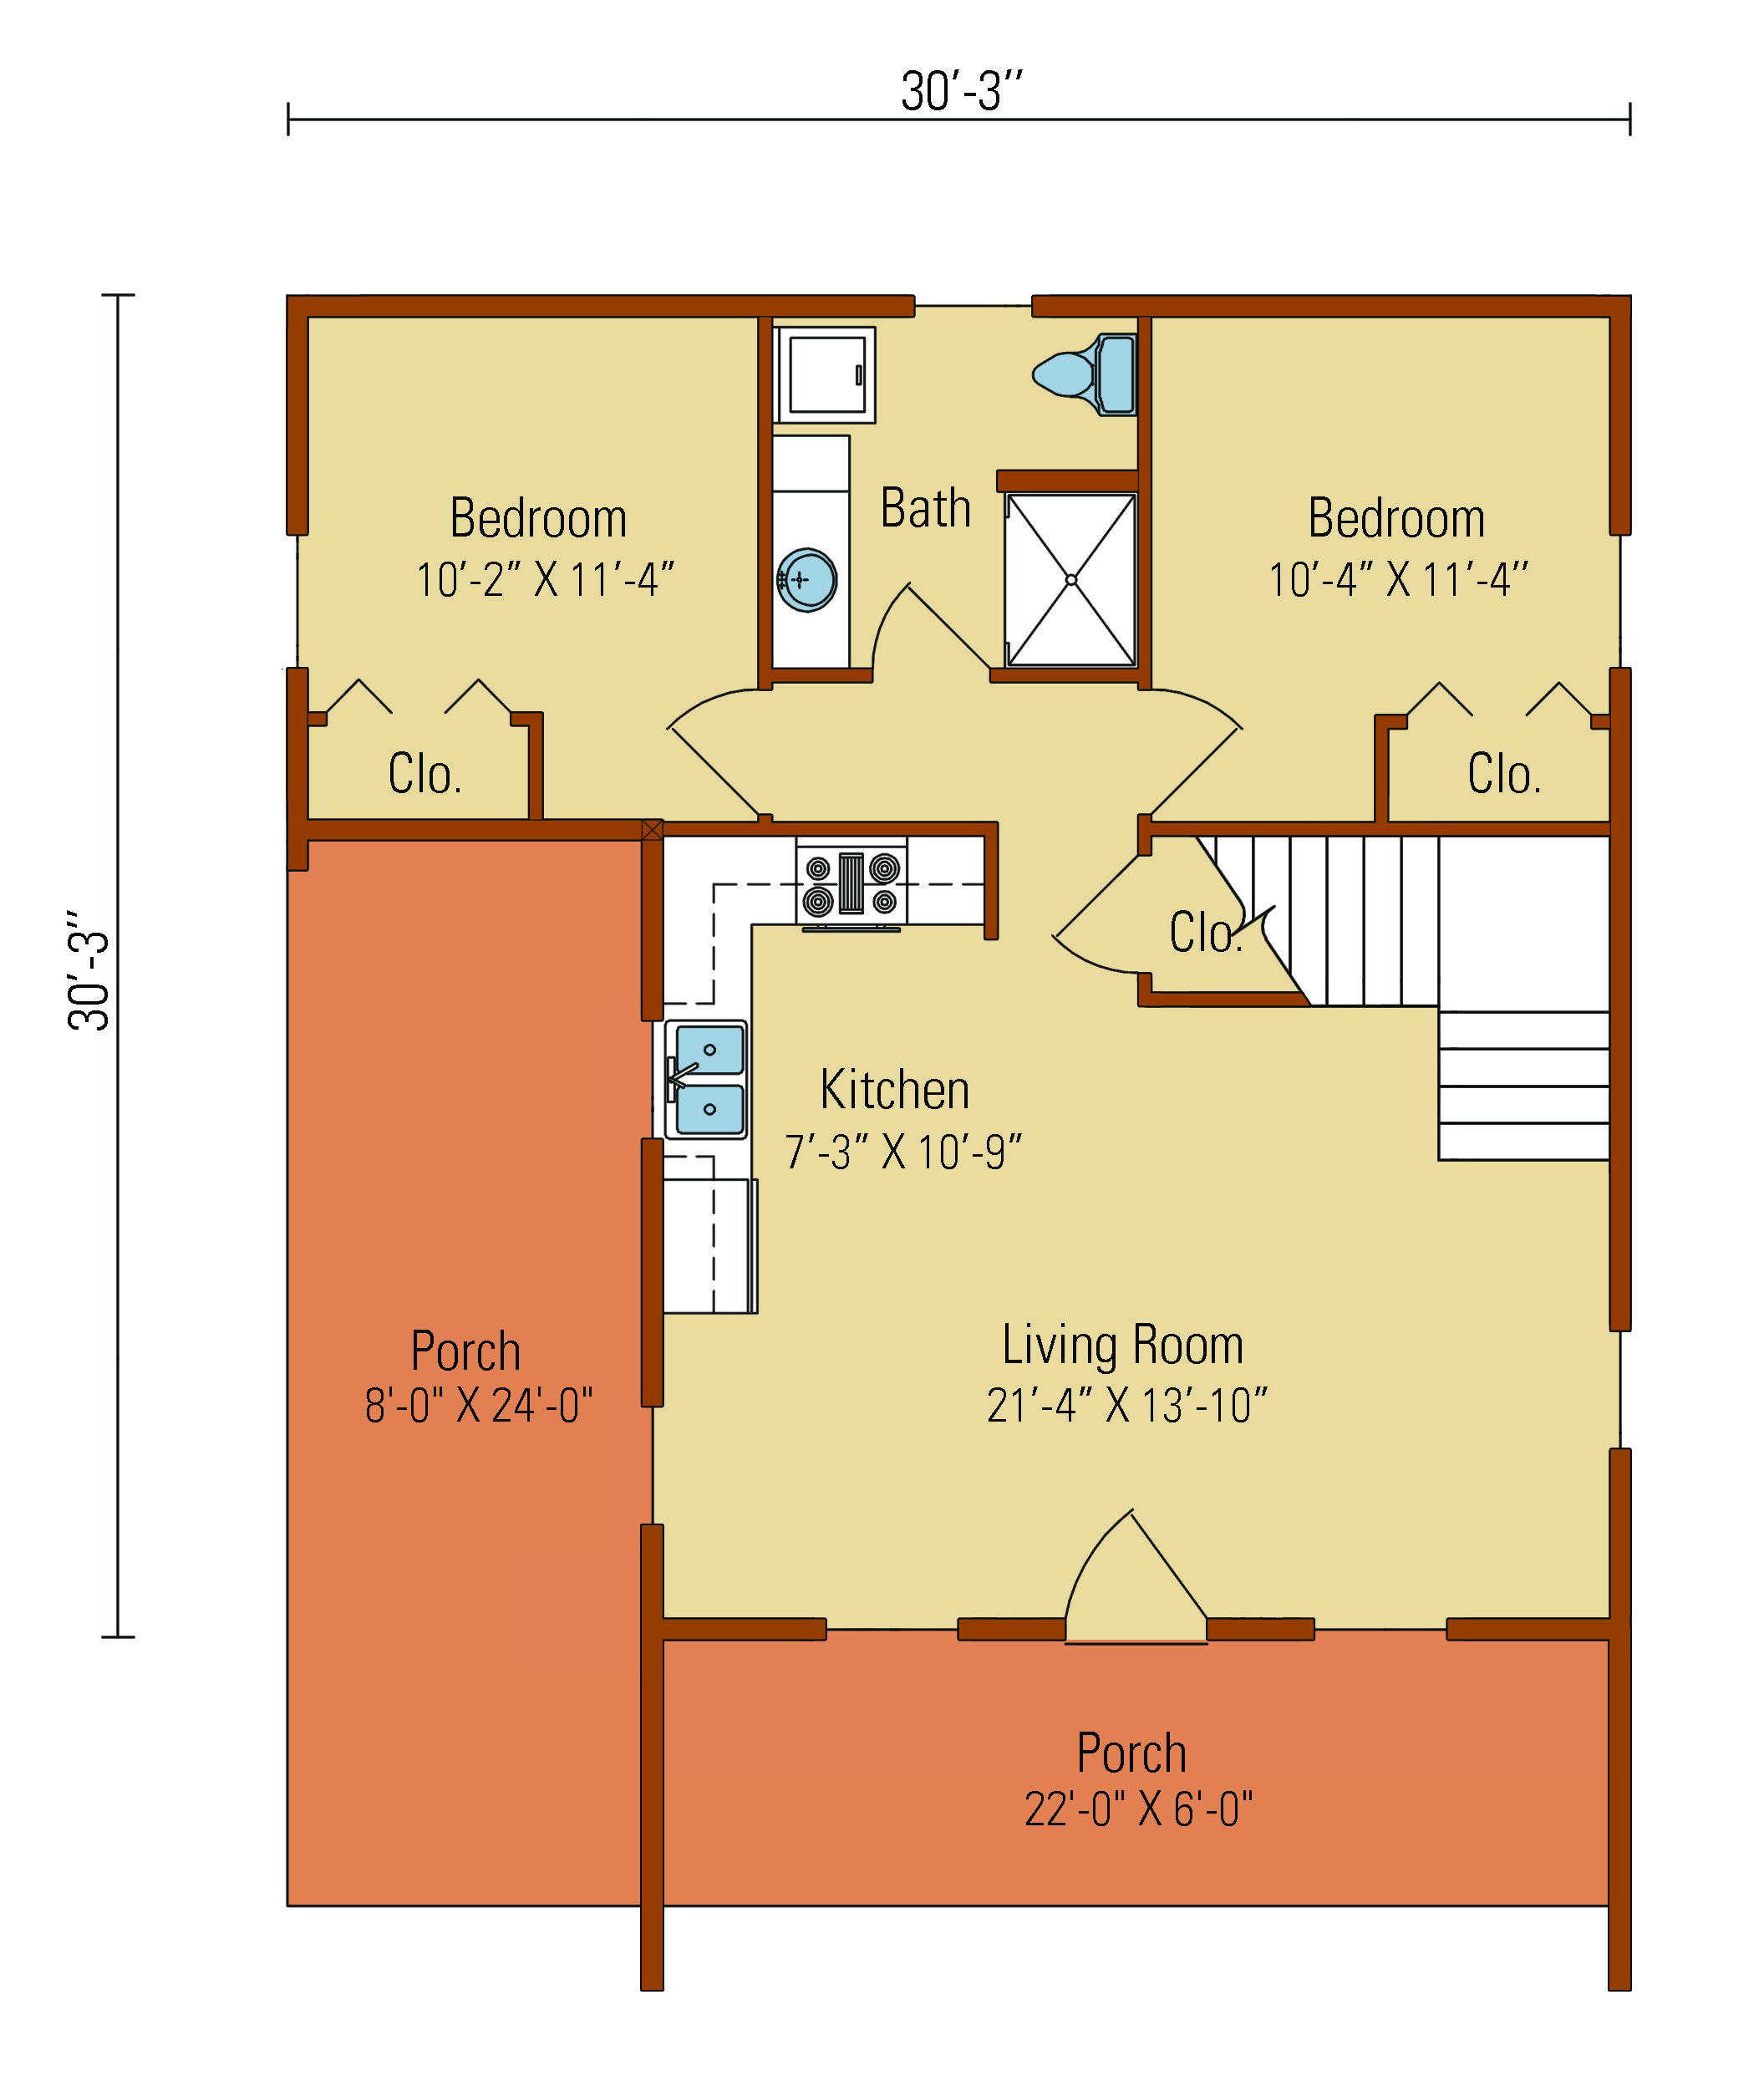 7 bedroom log cabin floor plans for 5 bedroom log home floor plans